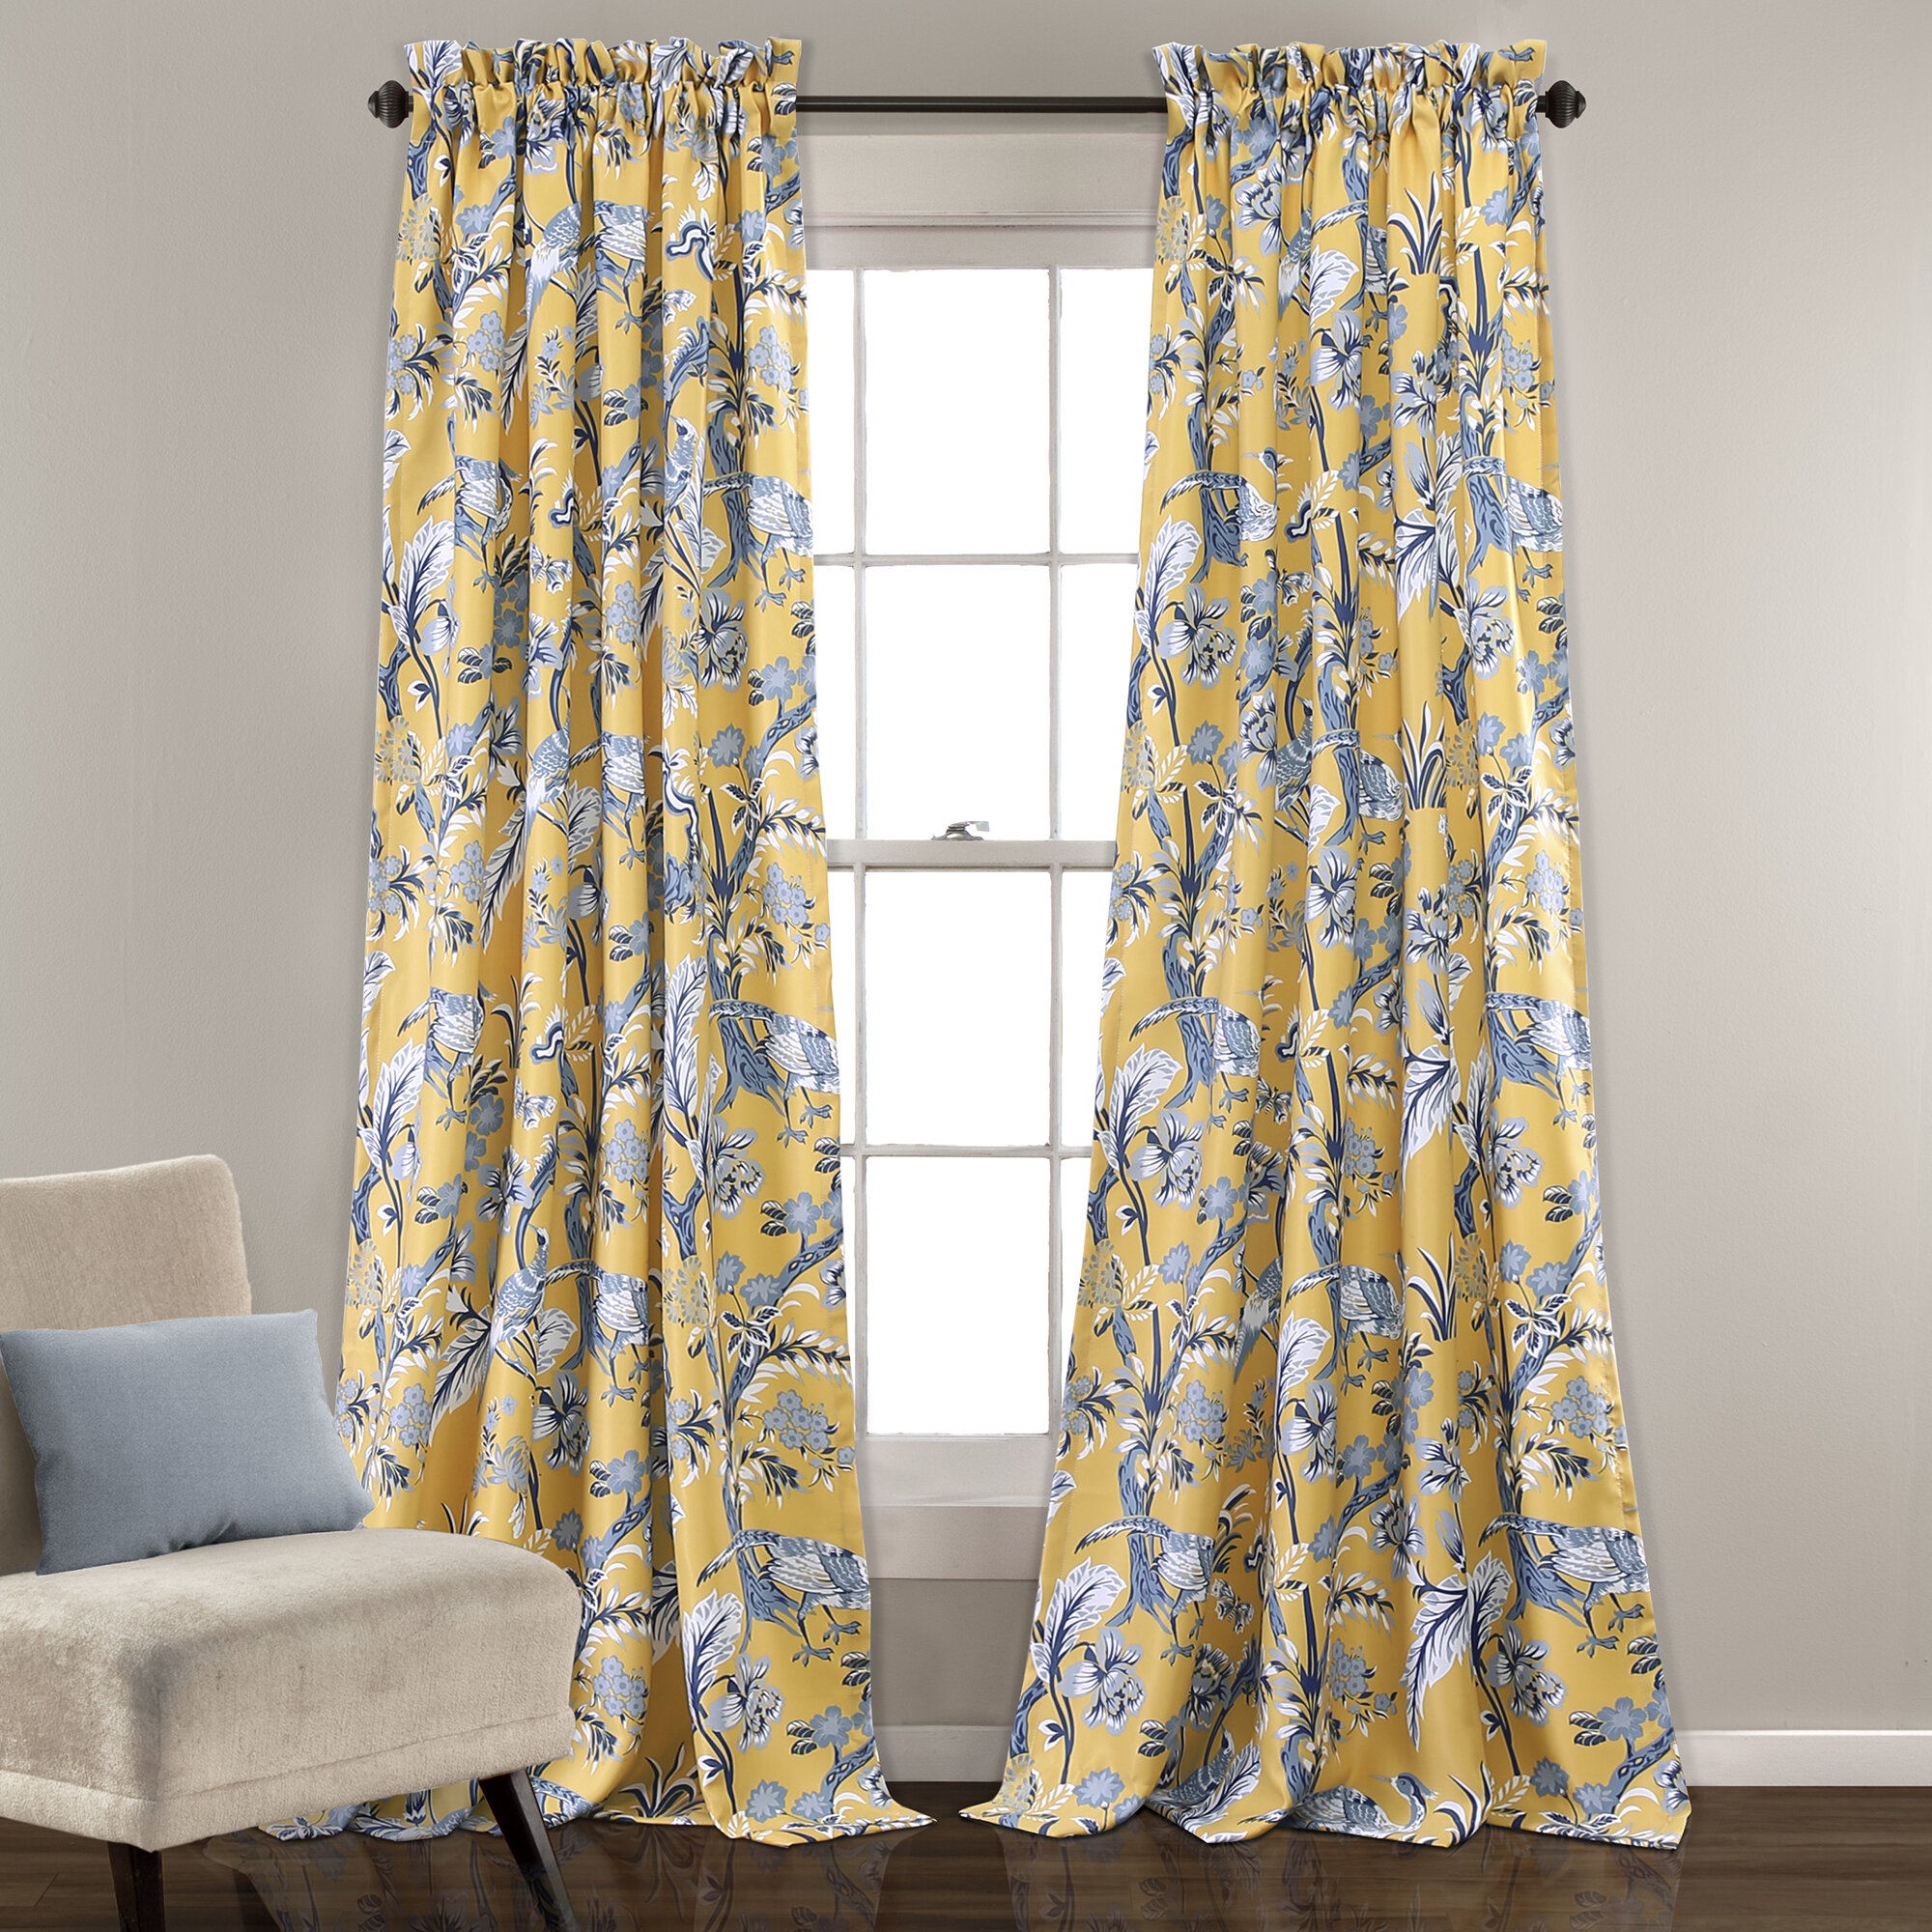 pair curtains panels us en merete curtain ikea products catalog